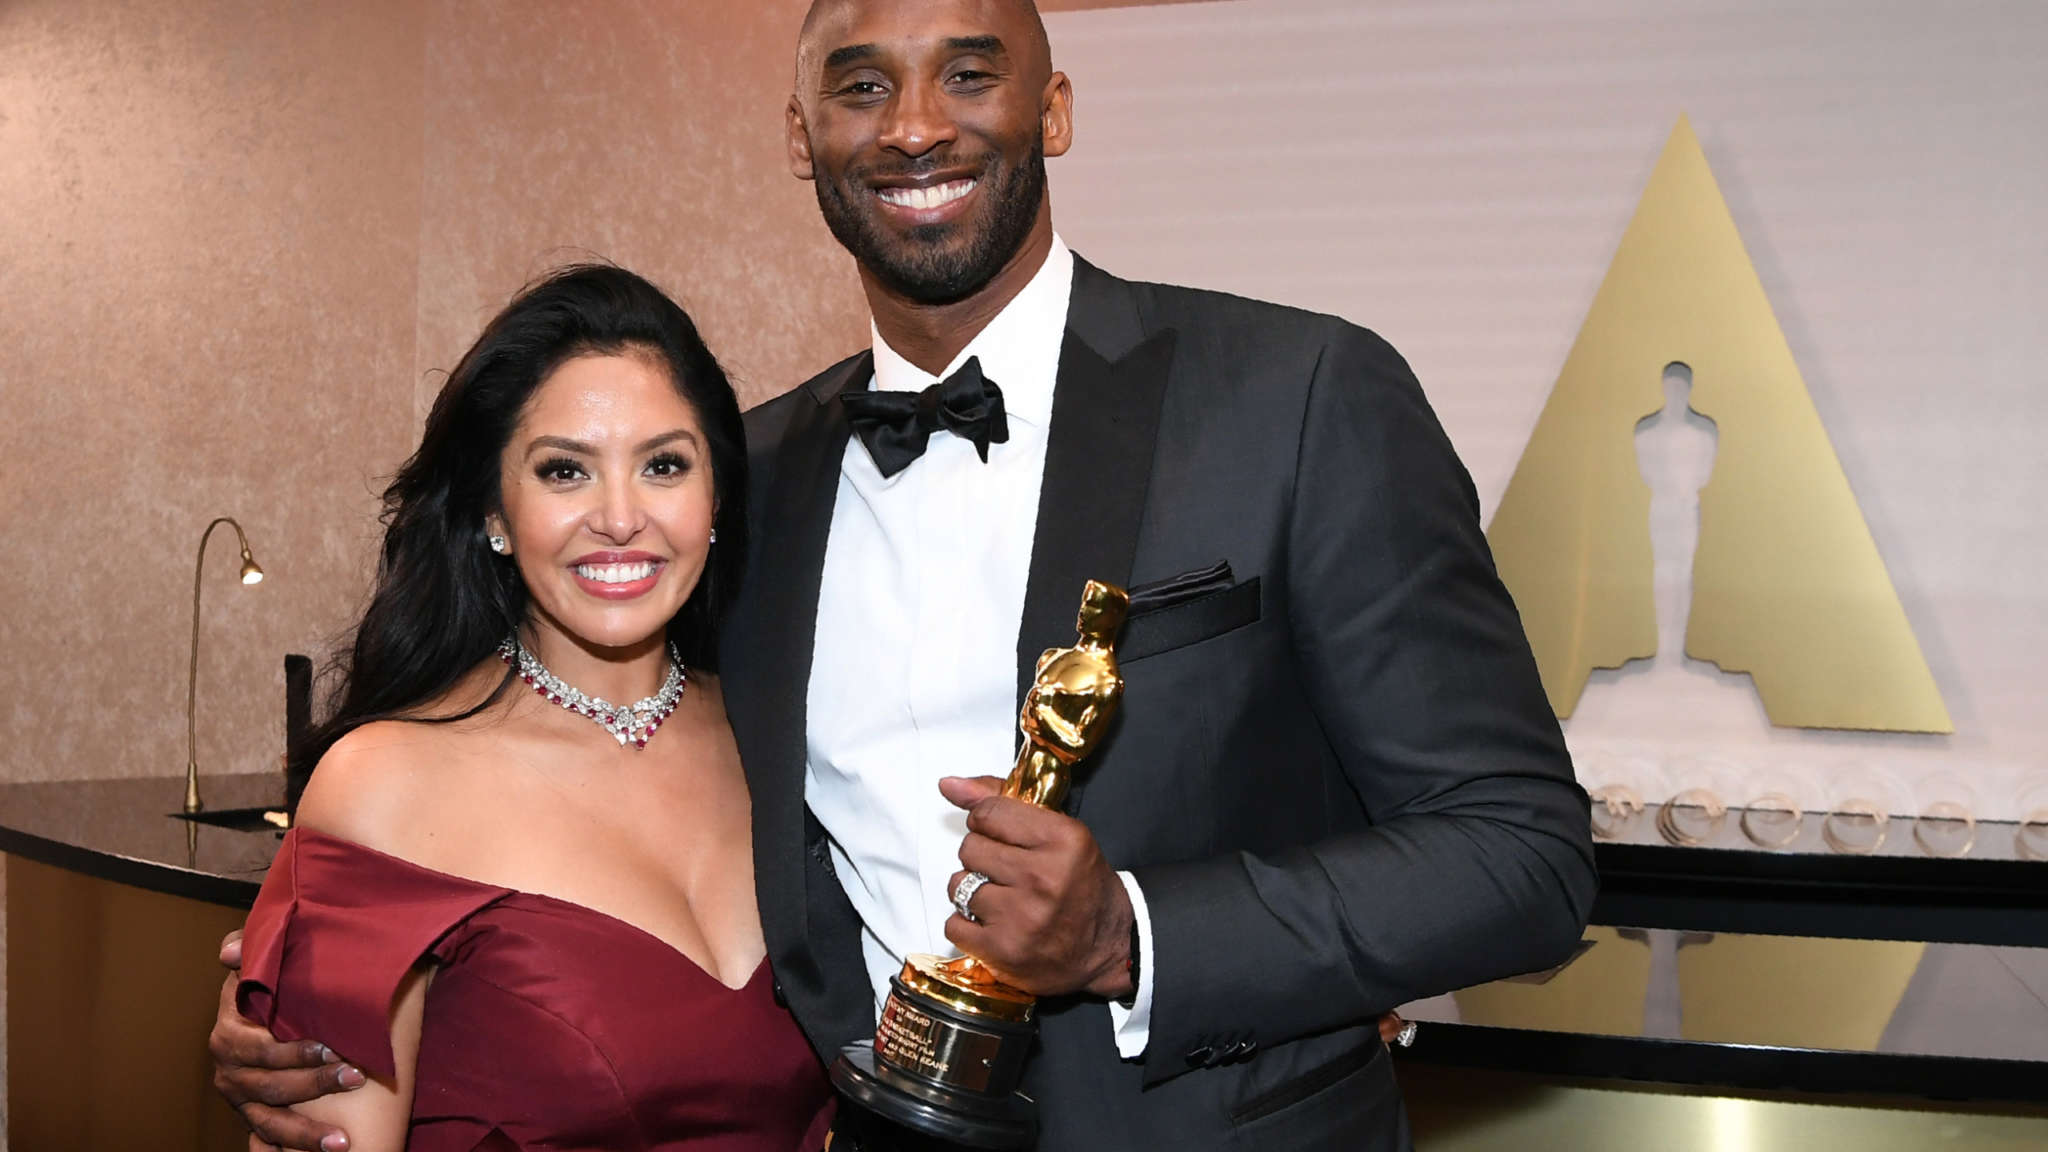 vanessa-bryant-pens-heartfelt-birthday-note-for-the-late-kobe-bryant